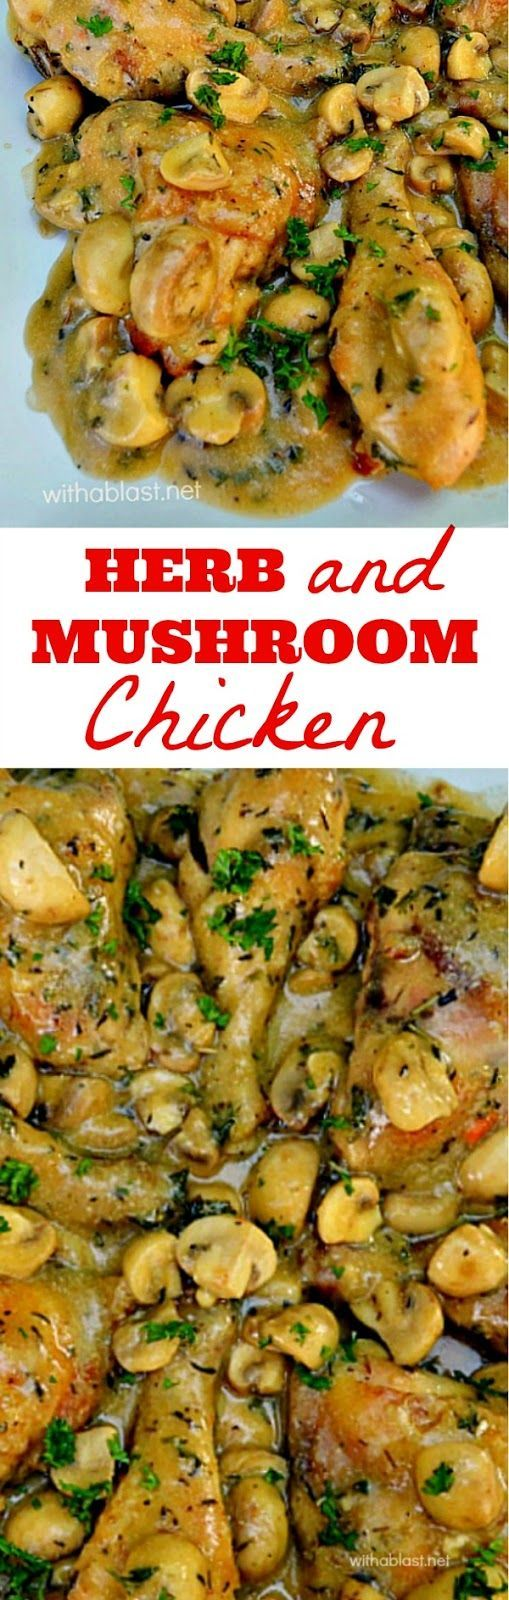 Tender, juicy Chicken smothered in a delicious Herb and Mushroom Sauce makes this the perfect dinner